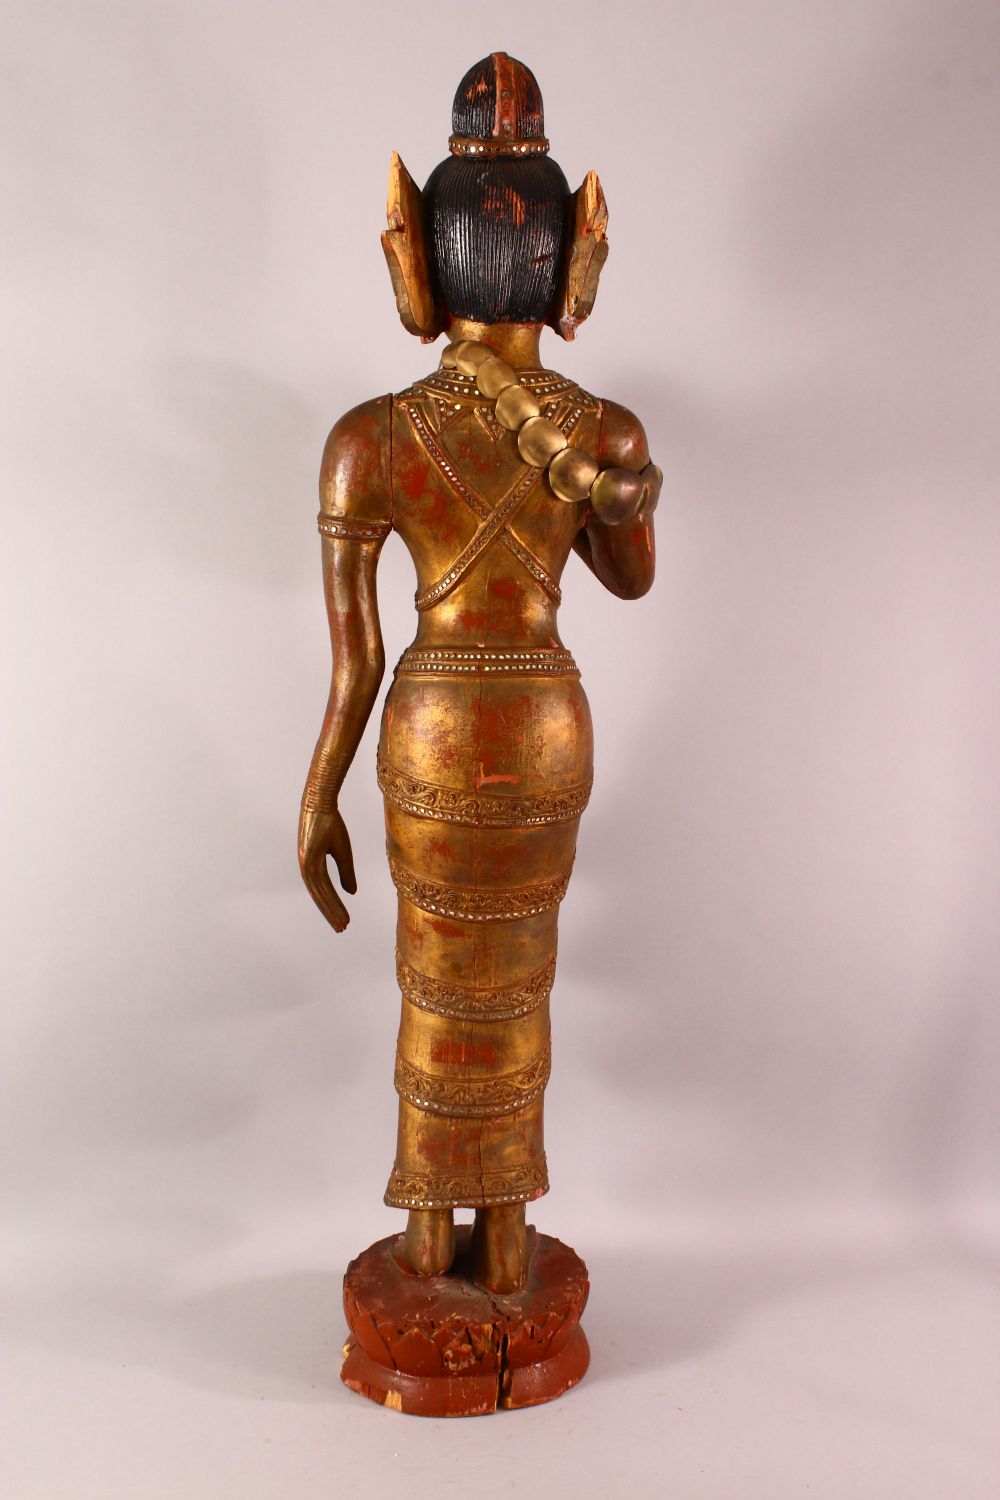 A LARGE THAI GILT AND RED LACQUER CARVED WOOD FIGURE, standing on a lotus base, 104cm high. - Image 6 of 8